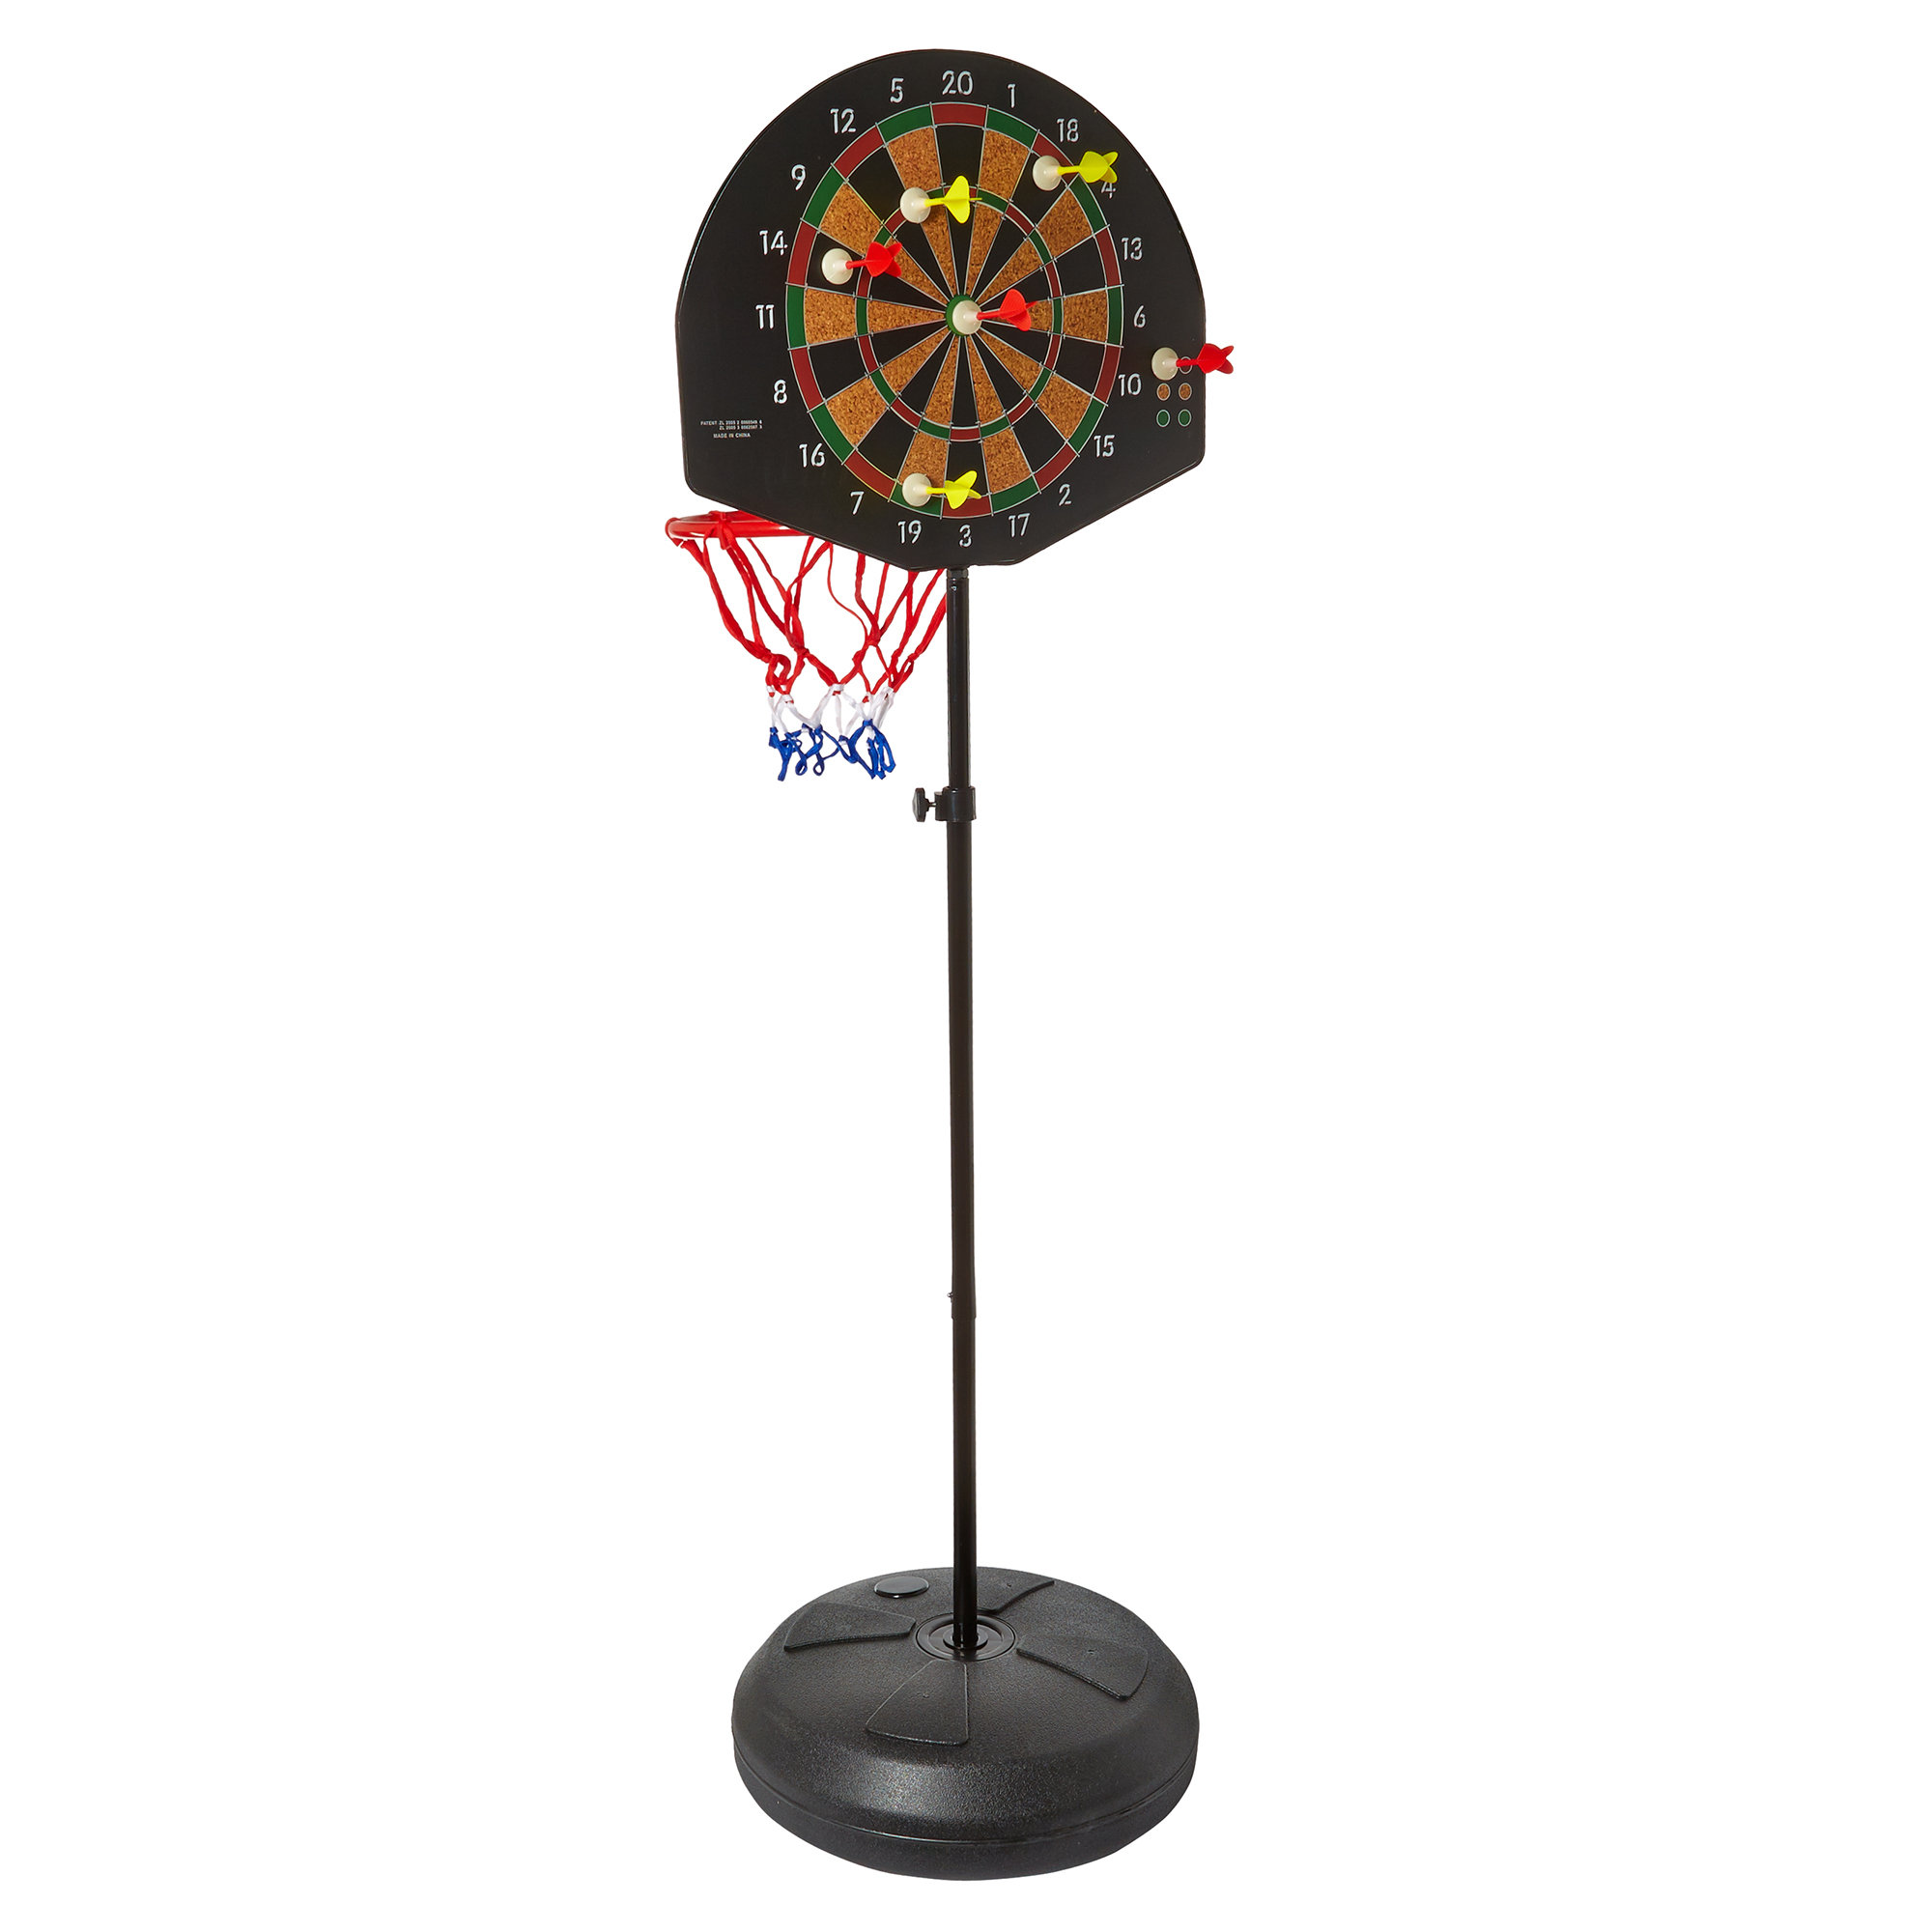 Moov'ngo 2 In 1 Basketball Dartboard Set